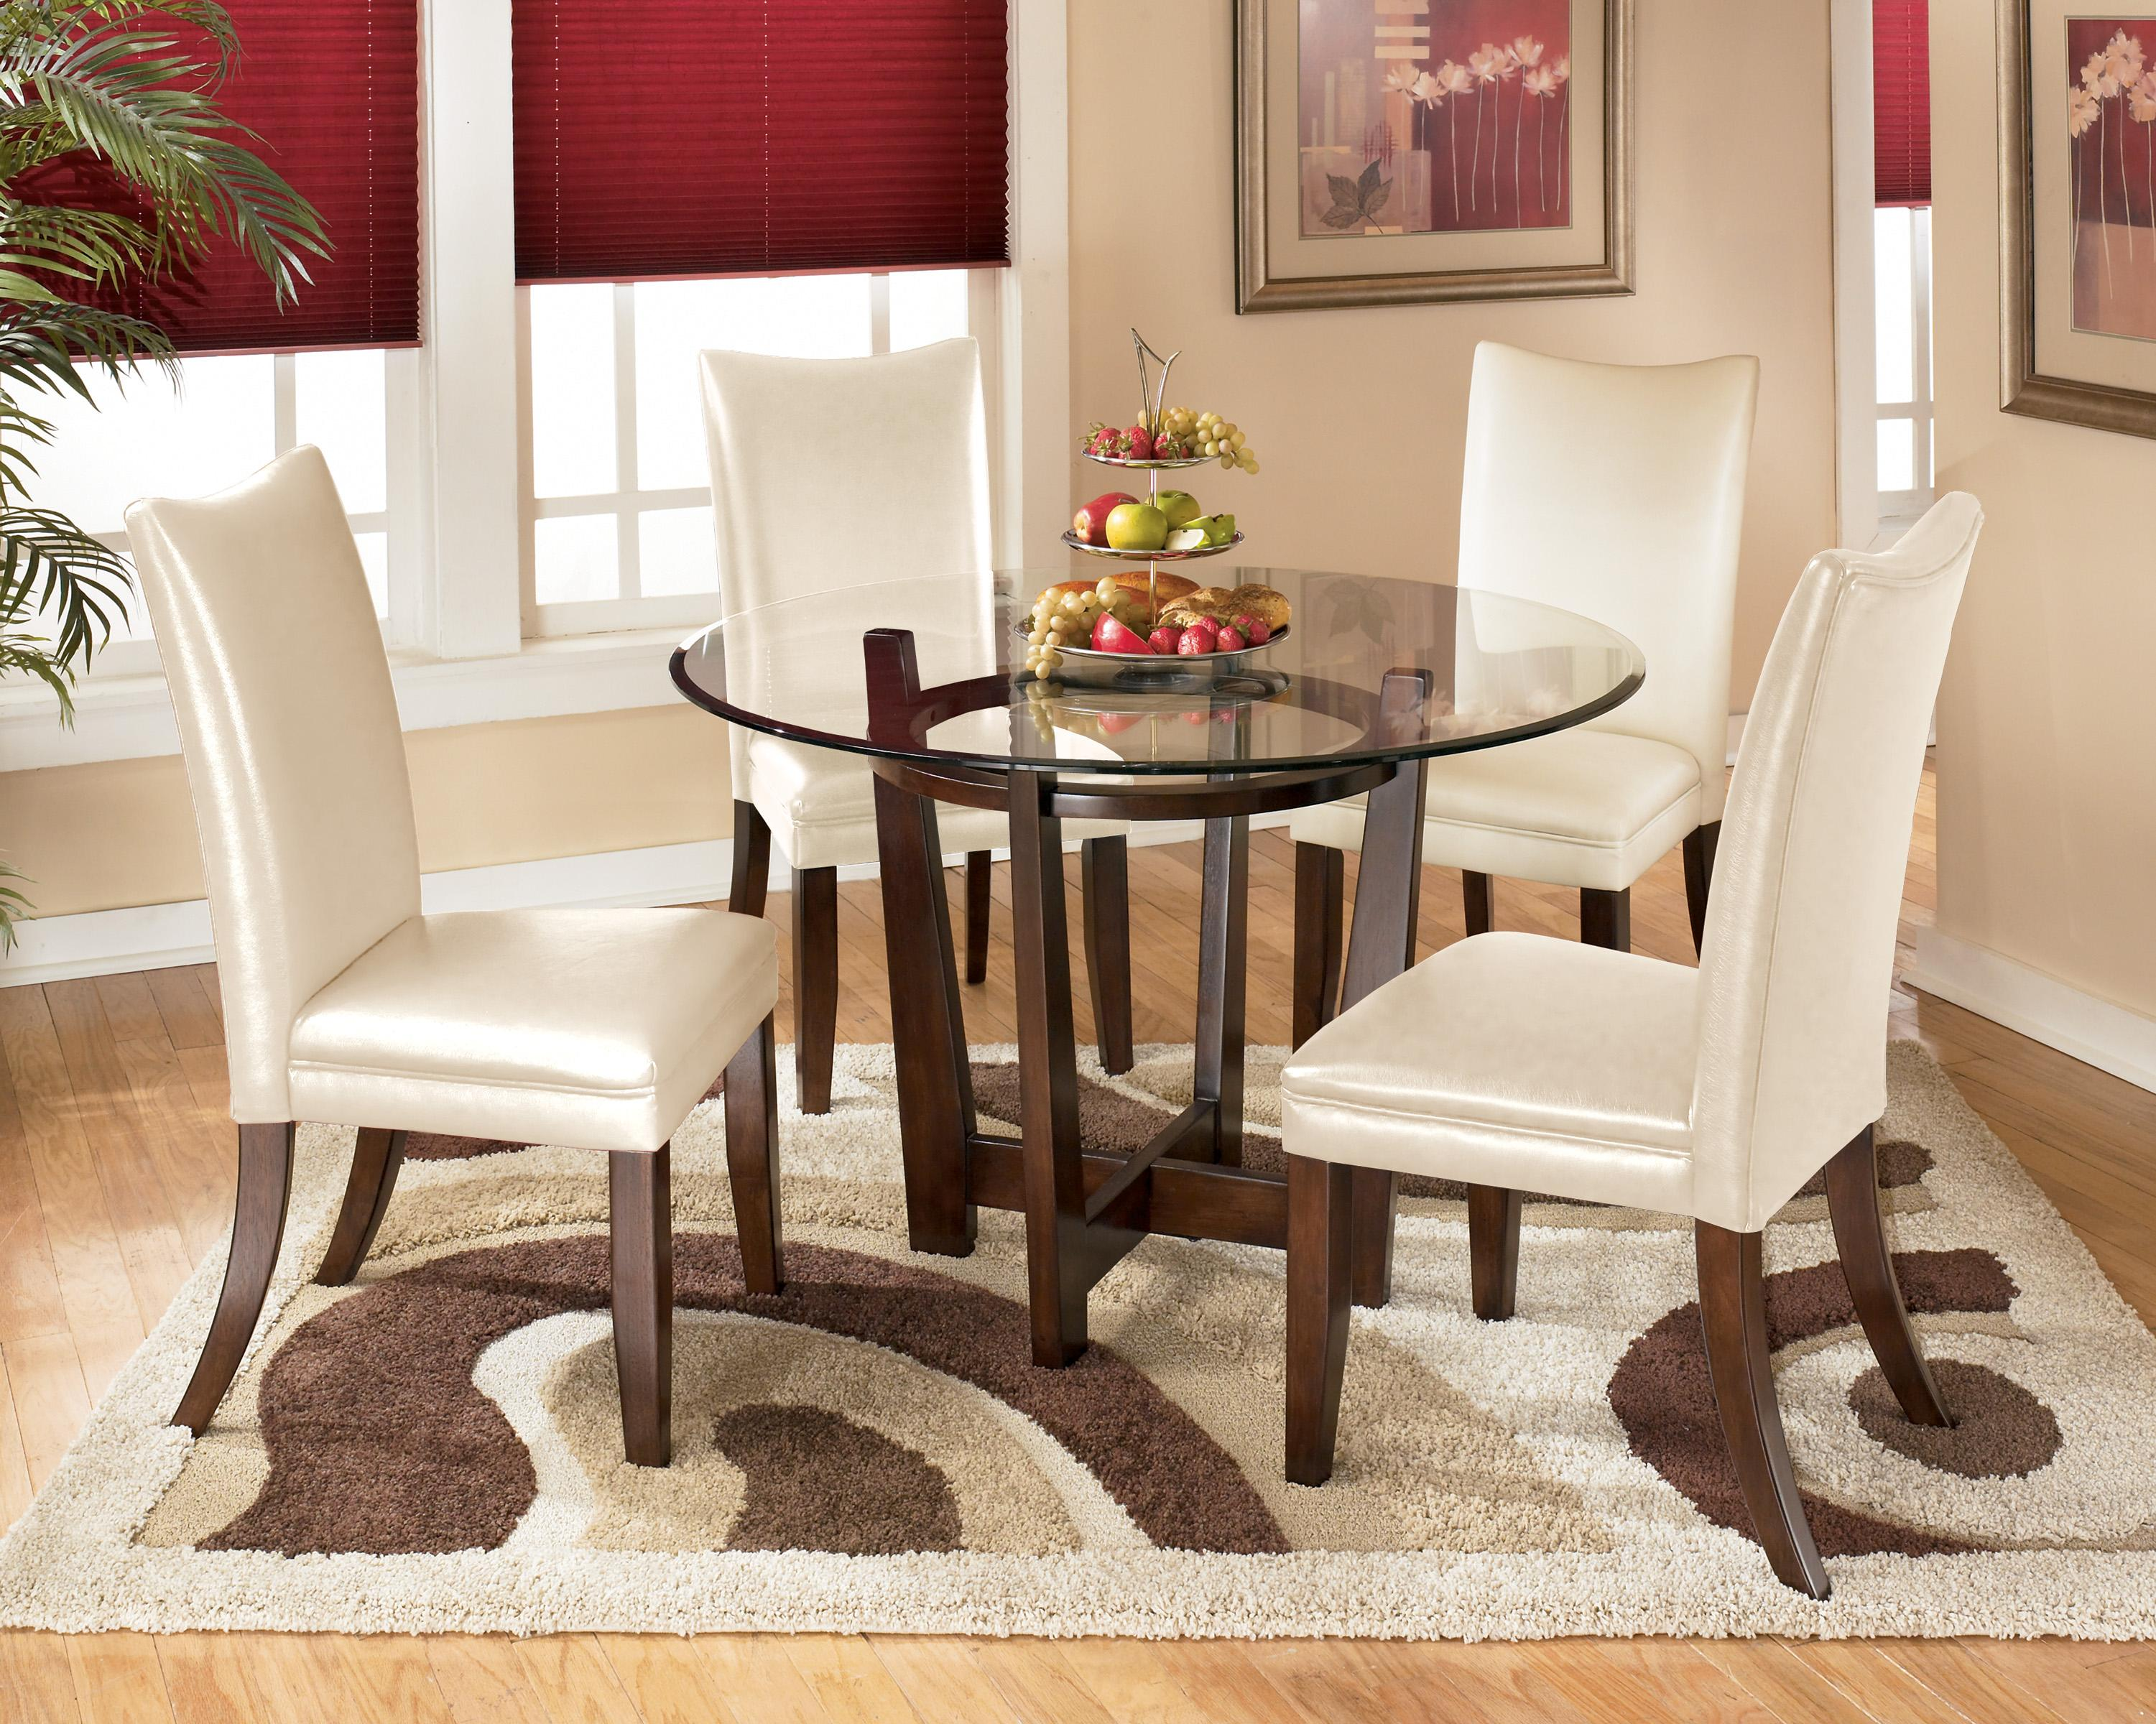 Signature Design by Ashley Charrell 5 Piece Round Dining Table Set ...